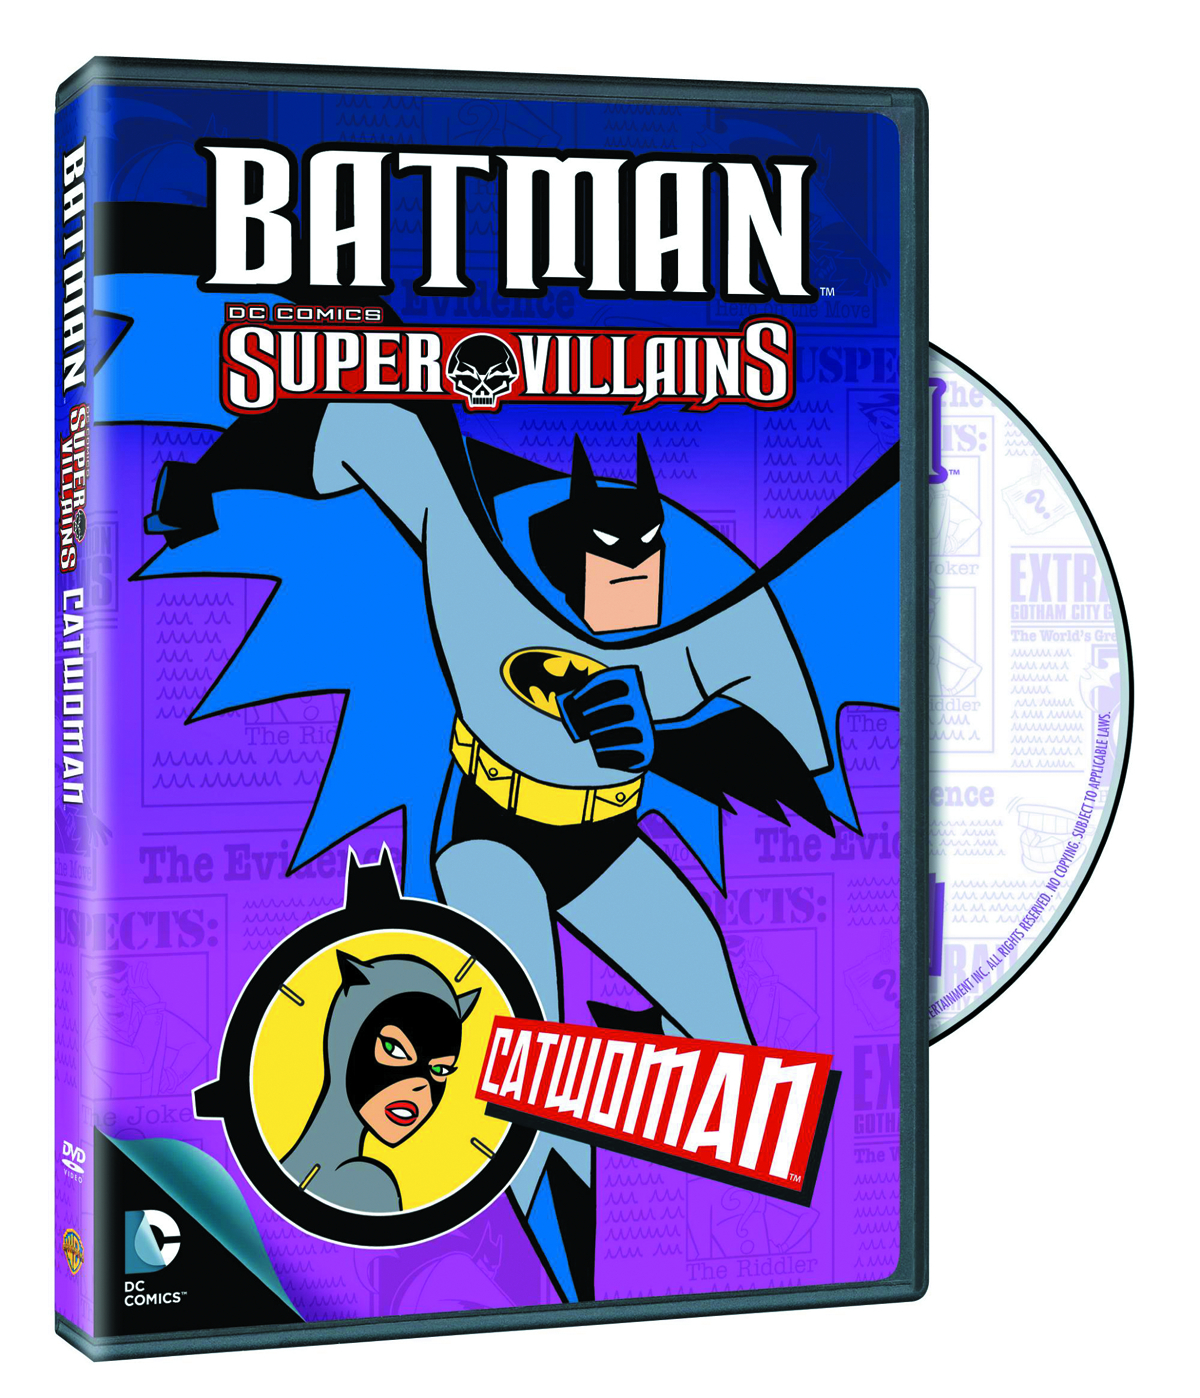 BATMAN SUPER VILLAINS CATWOMAN DVD